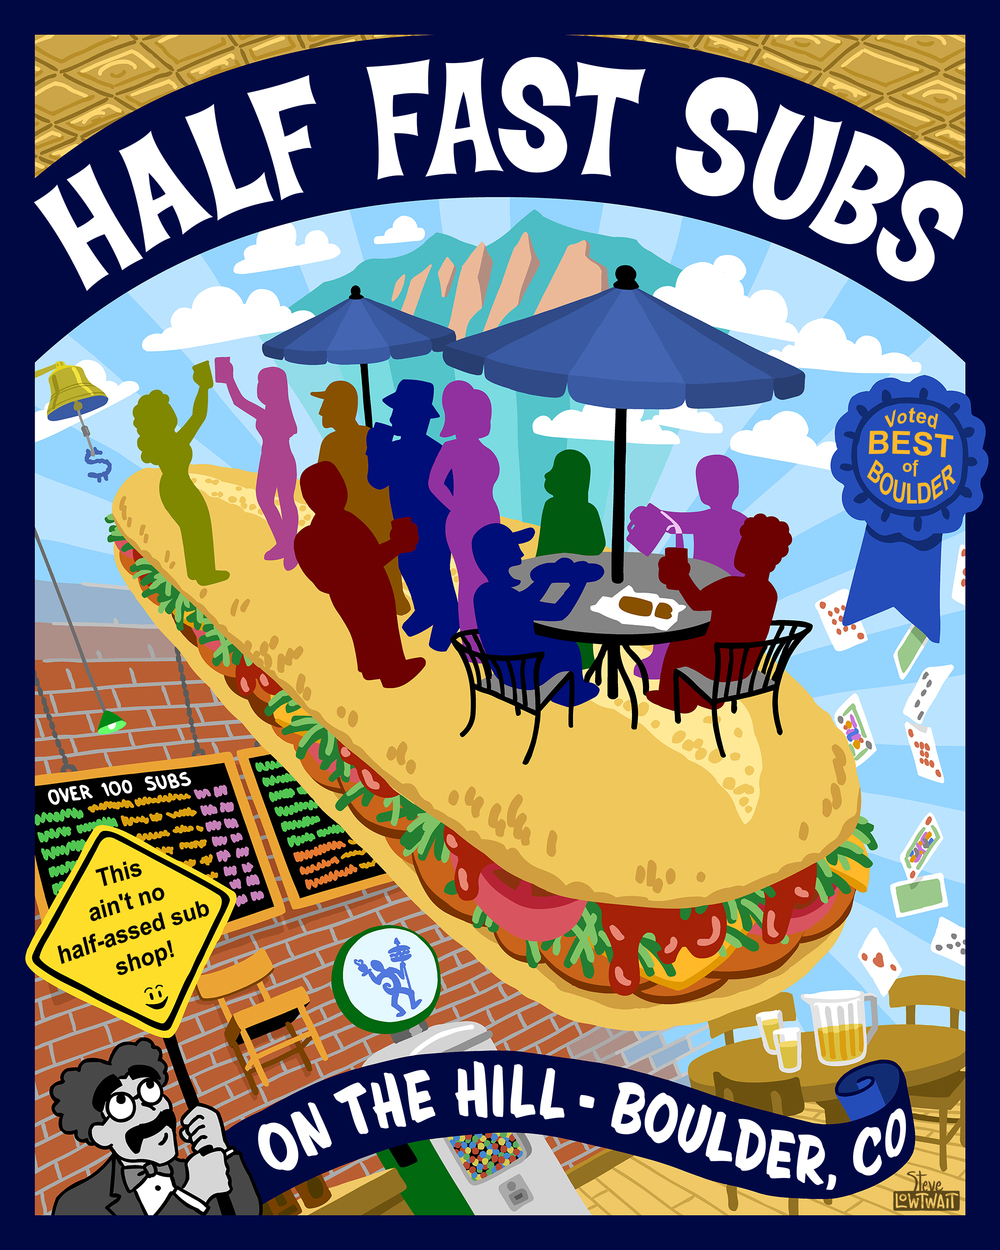 Half Fast Subs • Commissioned for a sub shop near a university campus. Client: Half Fast Subs